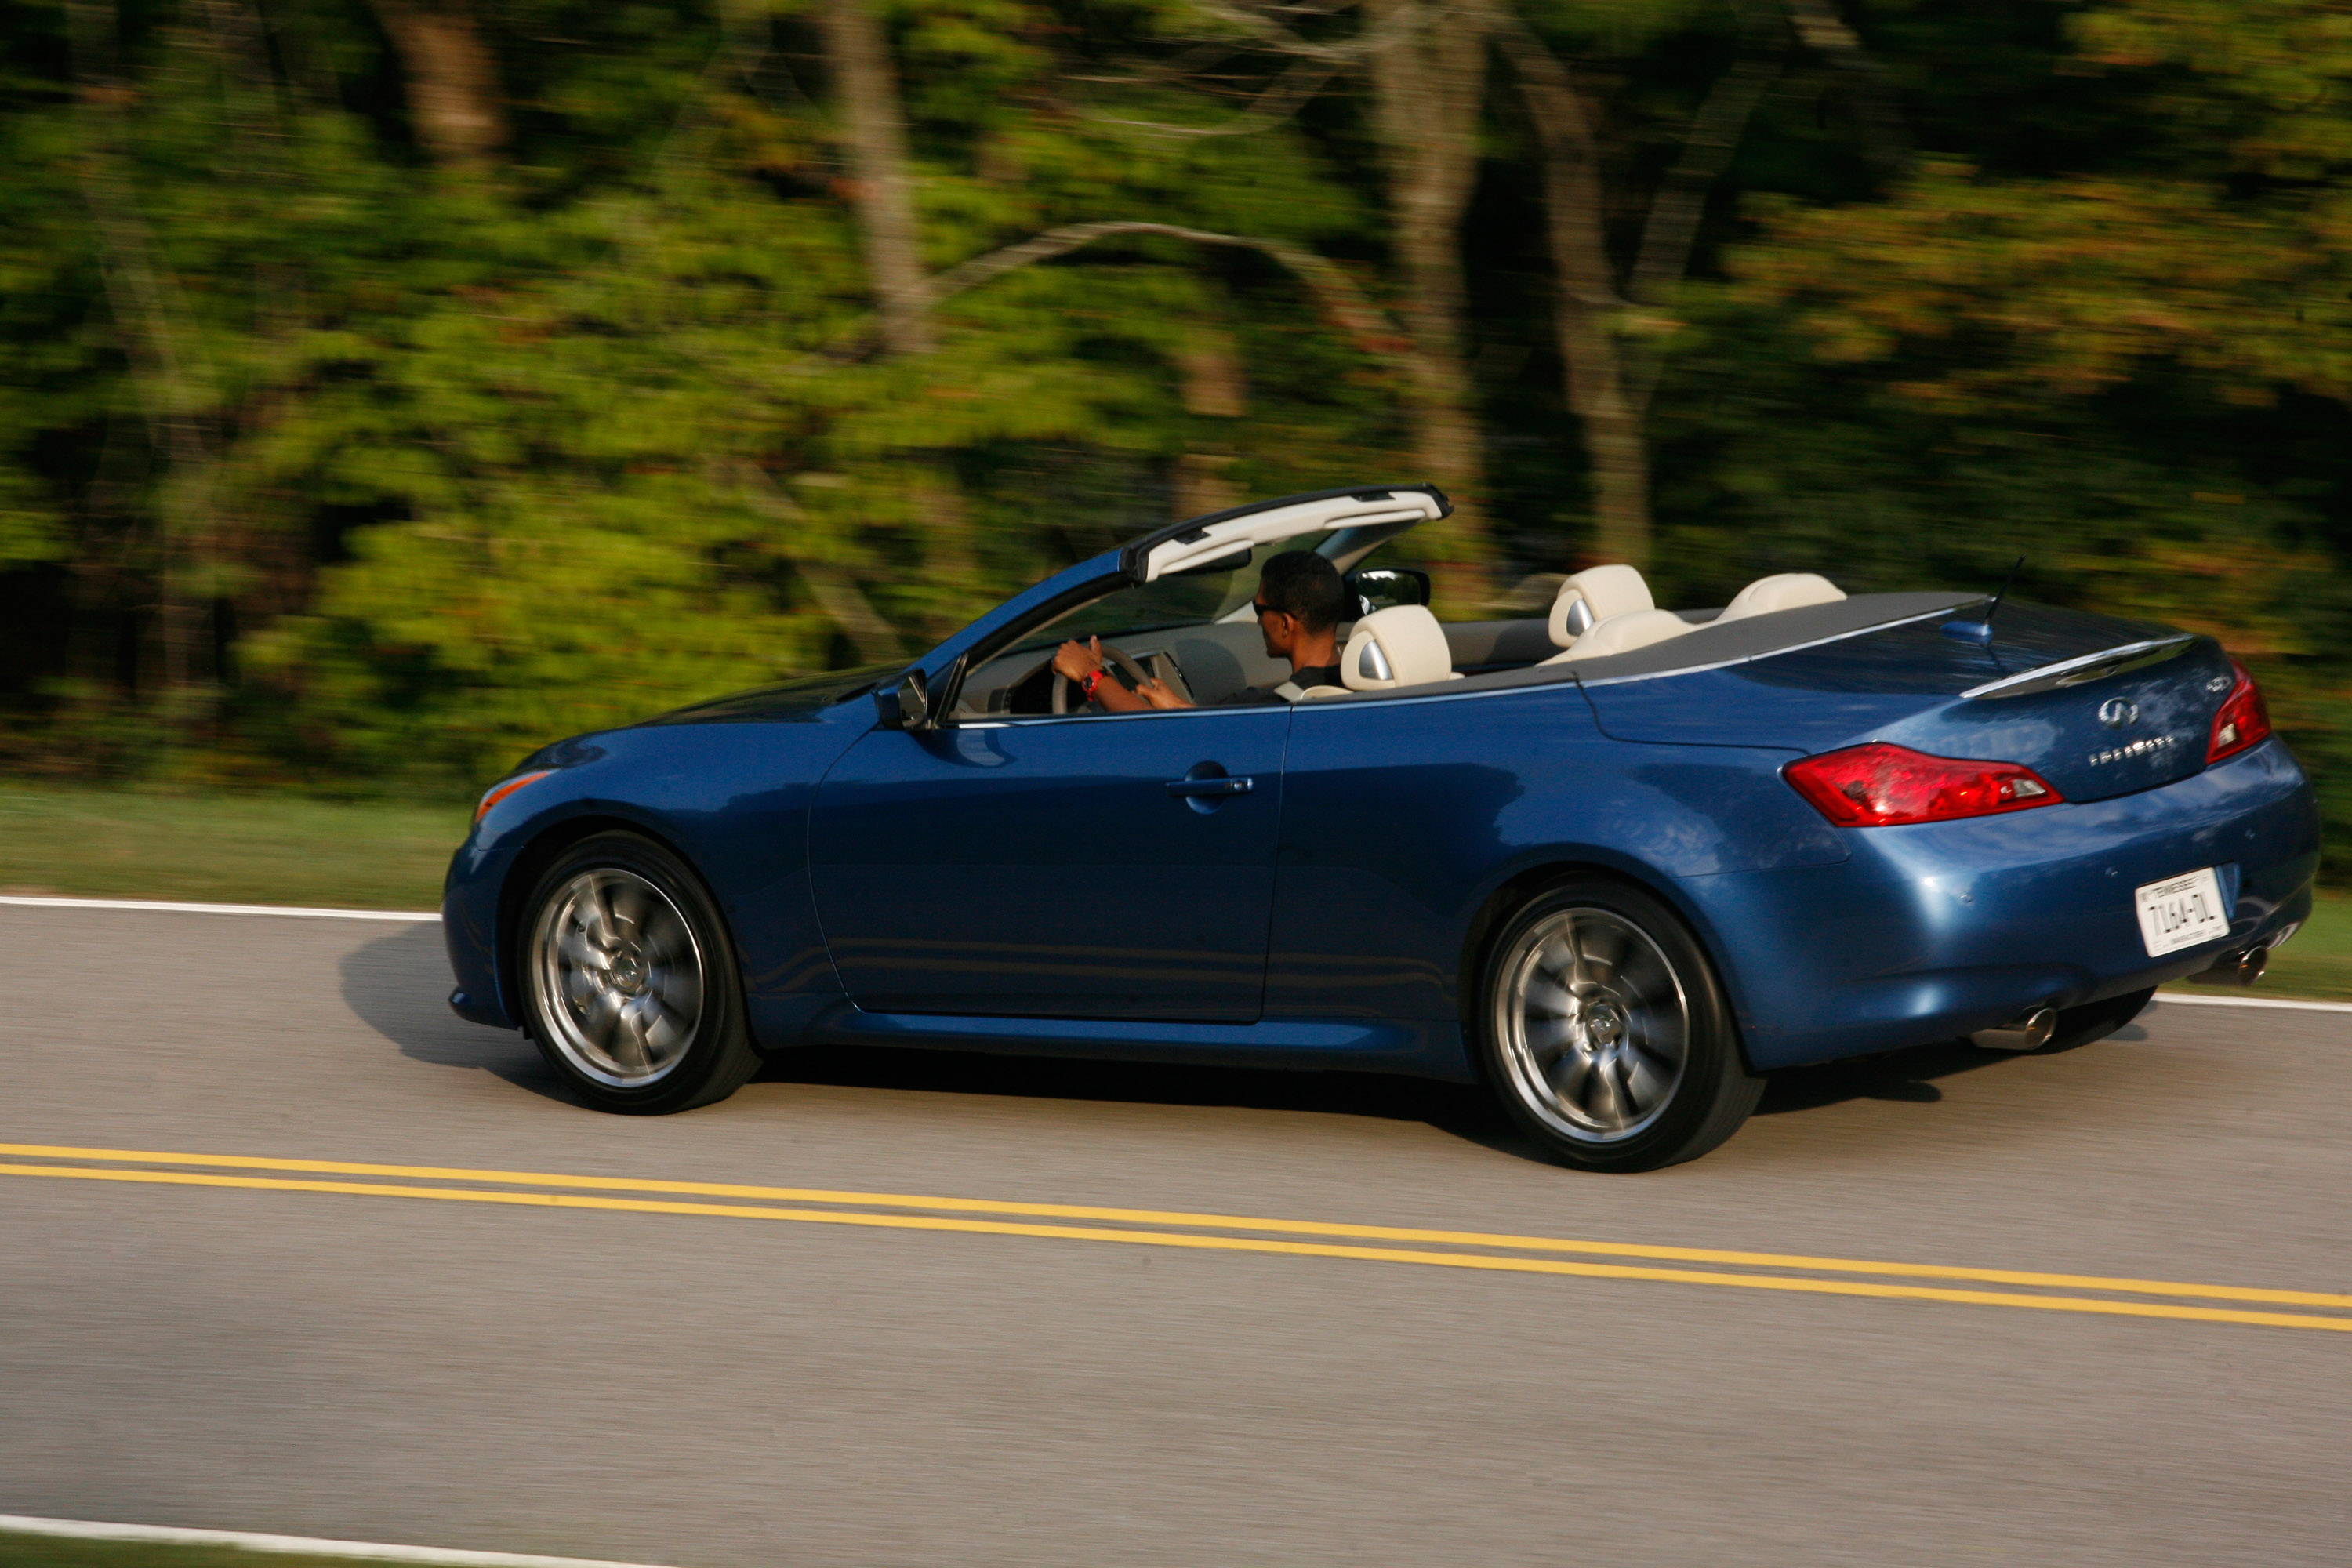 convert top cars convertible speed infiniti infinity